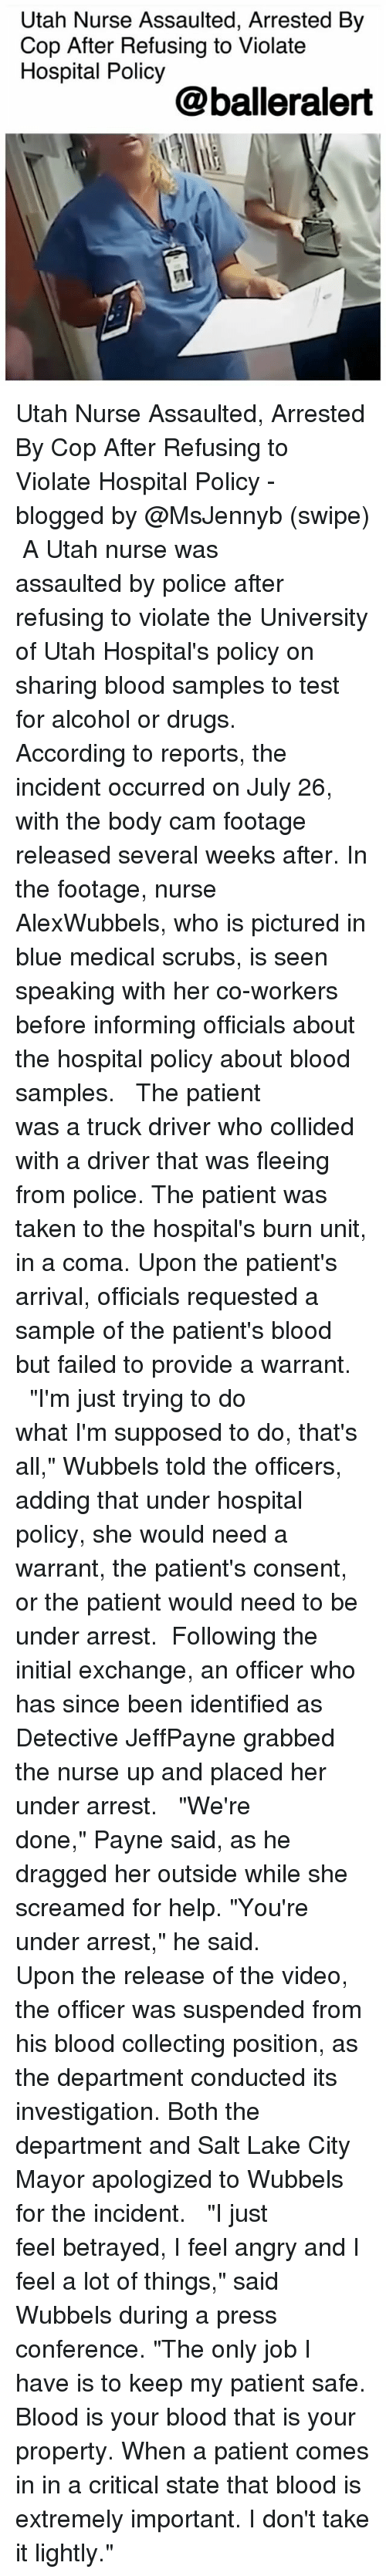 """Bloods, Drugs, and Memes: Utah Nurse Assaulted, Arrested By  Cop After Refusing to Violate  Hospital Policy  @balleralert Utah Nurse Assaulted, Arrested By Cop After Refusing to Violate Hospital Policy - blogged by @MsJennyb (swipe) ⠀⠀⠀⠀⠀⠀⠀ A Utah nurse was assaulted by police after refusing to violate the University of Utah Hospital's policy on sharing blood samples to test for alcohol or drugs. ⠀⠀⠀⠀⠀⠀⠀ ⠀⠀⠀⠀⠀⠀⠀ According to reports, the incident occurred on July 26, with the body cam footage released several weeks after. In the footage, nurse AlexWubbels, who is pictured in blue medical scrubs, is seen speaking with her co-workers before informing officials about the hospital policy about blood samples. ⠀⠀⠀⠀⠀⠀⠀ ⠀⠀⠀⠀⠀⠀⠀ The patient was a truck driver who collided with a driver that was fleeing from police. The patient was taken to the hospital's burn unit, in a coma. Upon the patient's arrival, officials requested a sample of the patient's blood but failed to provide a warrant. ⠀⠀⠀⠀⠀⠀⠀ ⠀⠀⠀⠀⠀⠀⠀ """"I'm just trying to do what I'm supposed to do, that's all,"""" Wubbels told the officers, adding that under hospital policy, she would need a warrant, the patient's consent, or the patient would need to be under arrest. ⠀⠀⠀⠀⠀⠀⠀ Following the initial exchange, an officer who has since been identified as Detective JeffPayne grabbed the nurse up and placed her under arrest. ⠀⠀⠀⠀⠀⠀⠀ ⠀⠀⠀⠀⠀⠀⠀ """"We're done,"""" Payne said, as he dragged her outside while she screamed for help. """"You're under arrest,"""" he said. ⠀⠀⠀⠀⠀⠀⠀ Upon the release of the video, the officer was suspended from his blood collecting position, as the department conducted its investigation. Both the department and Salt Lake City Mayor apologized to Wubbels for the incident. ⠀⠀⠀⠀⠀⠀⠀ ⠀⠀⠀⠀⠀⠀⠀ """"I just feel betrayed, I feel angry and I feel a lot of things,"""" said Wubbels during a press conference. """"The only job I have is to keep my patient safe. Blood is your blood that is your property. When a patient comes in in a critical state """